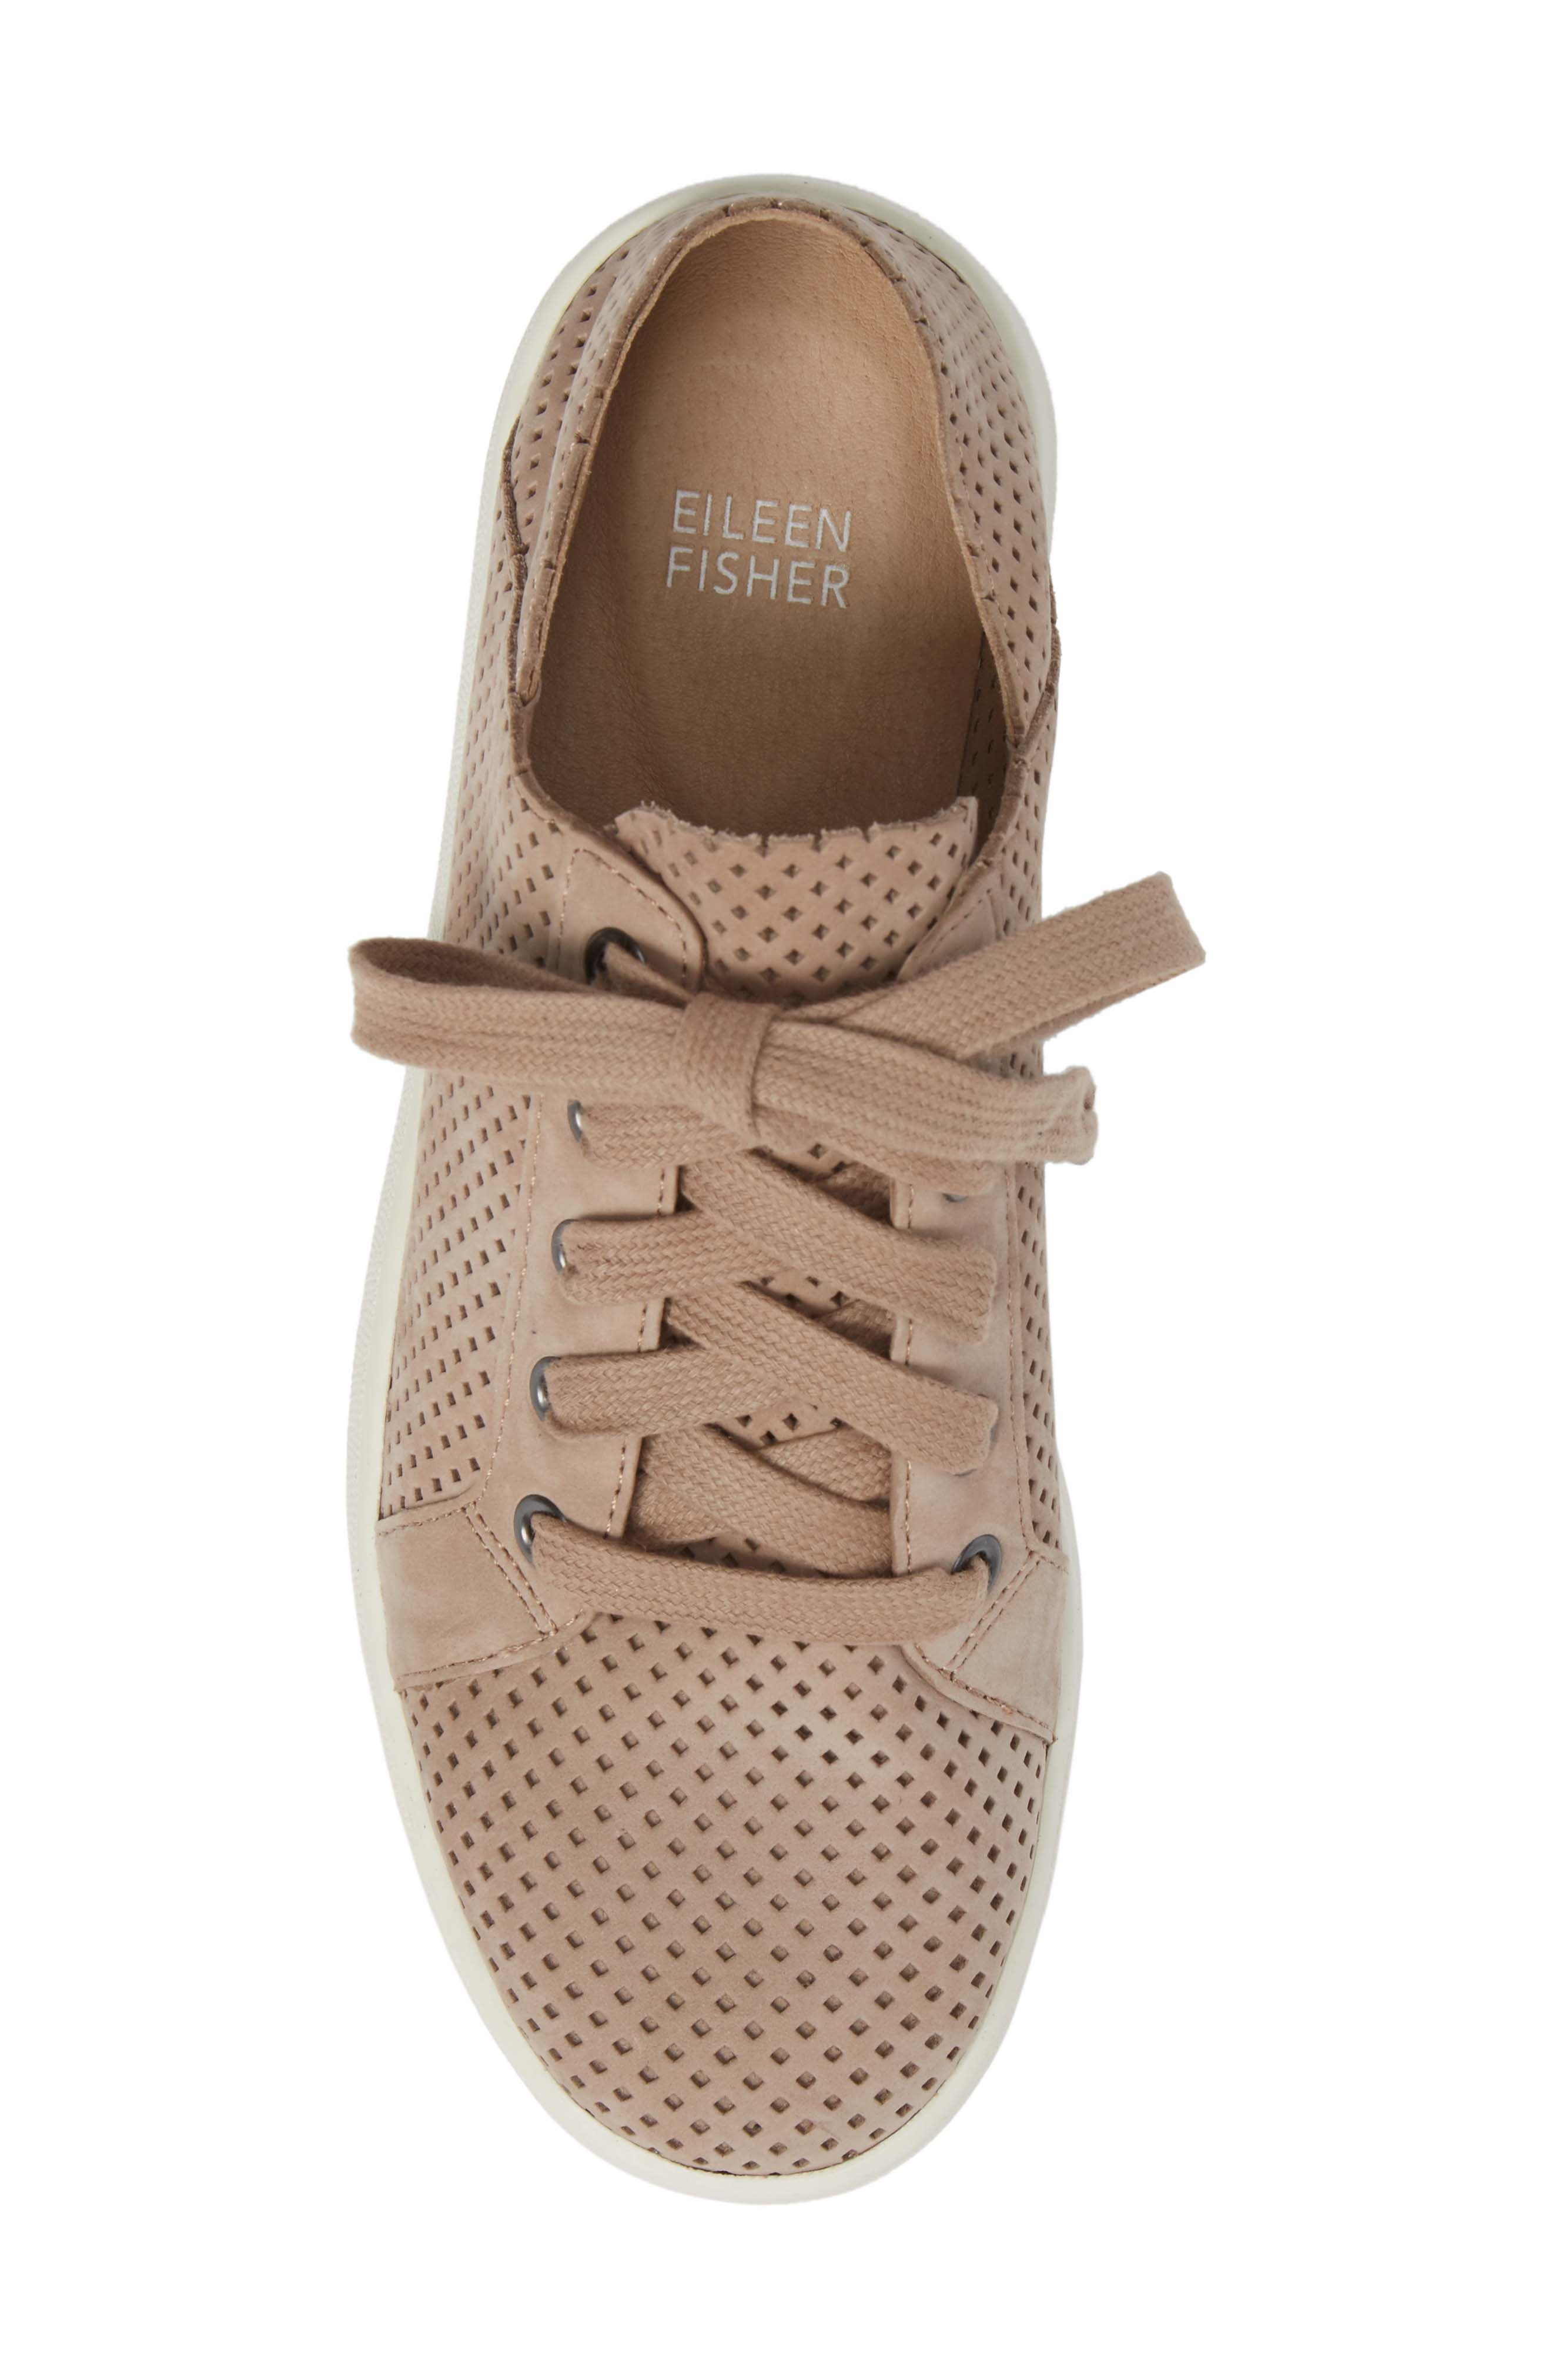 Clifton Perforated Sneaker,                             Alternate thumbnail 5, color,                             250